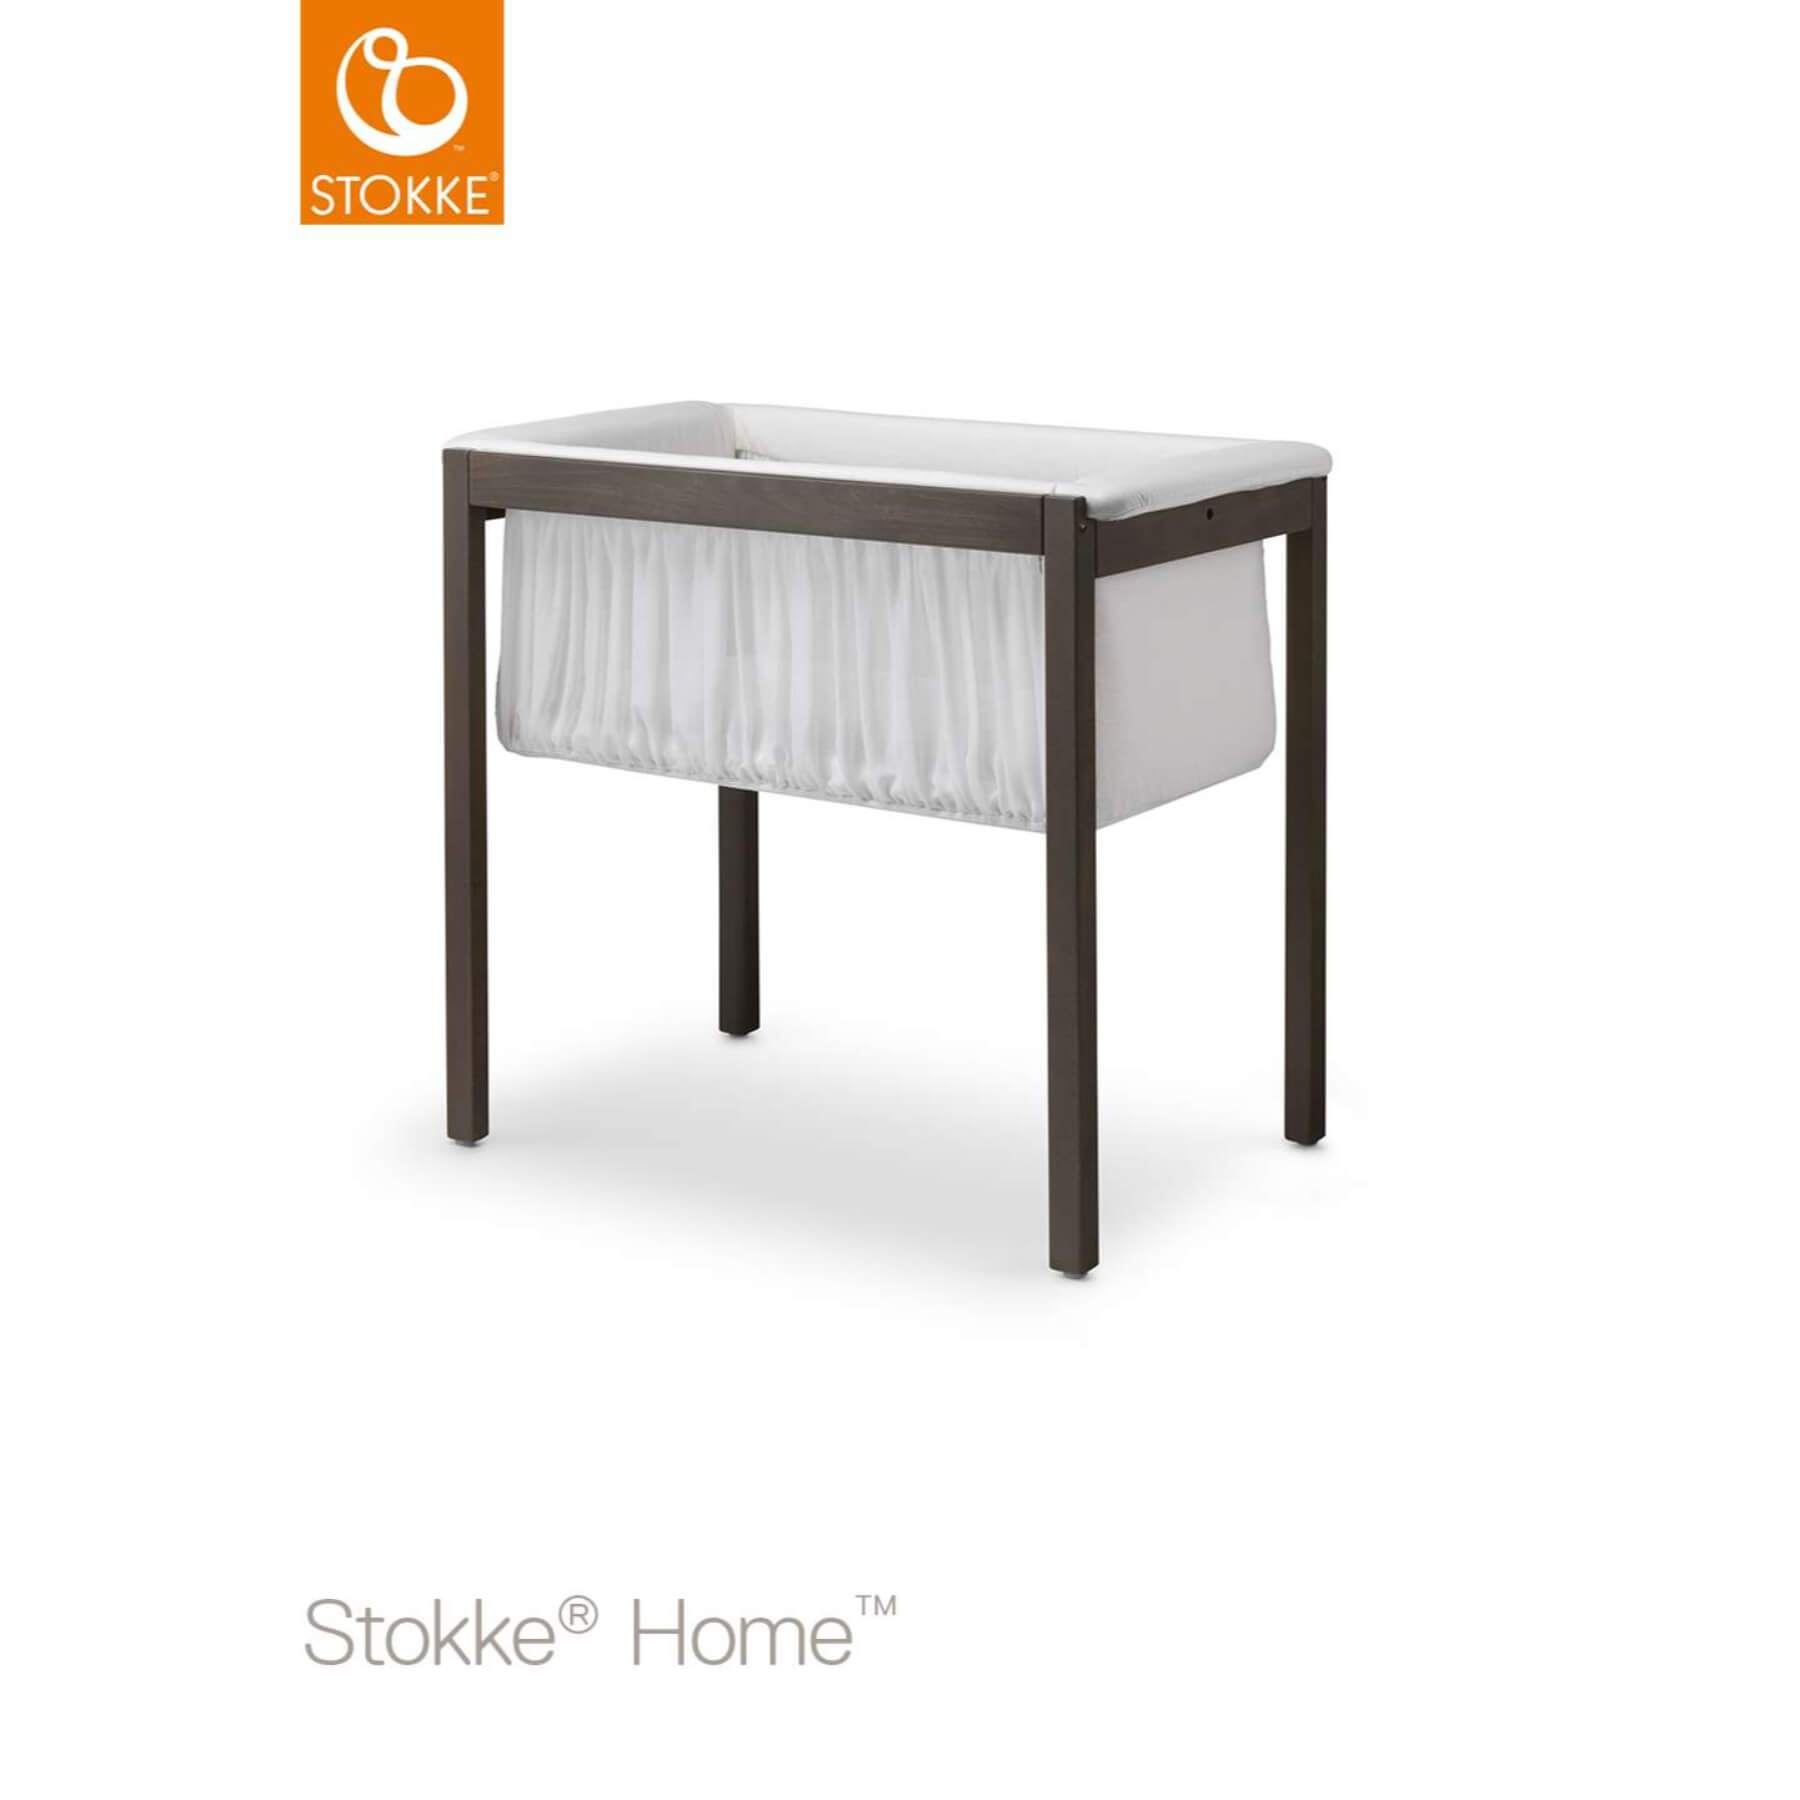 Stokke Home Cradle - huggle